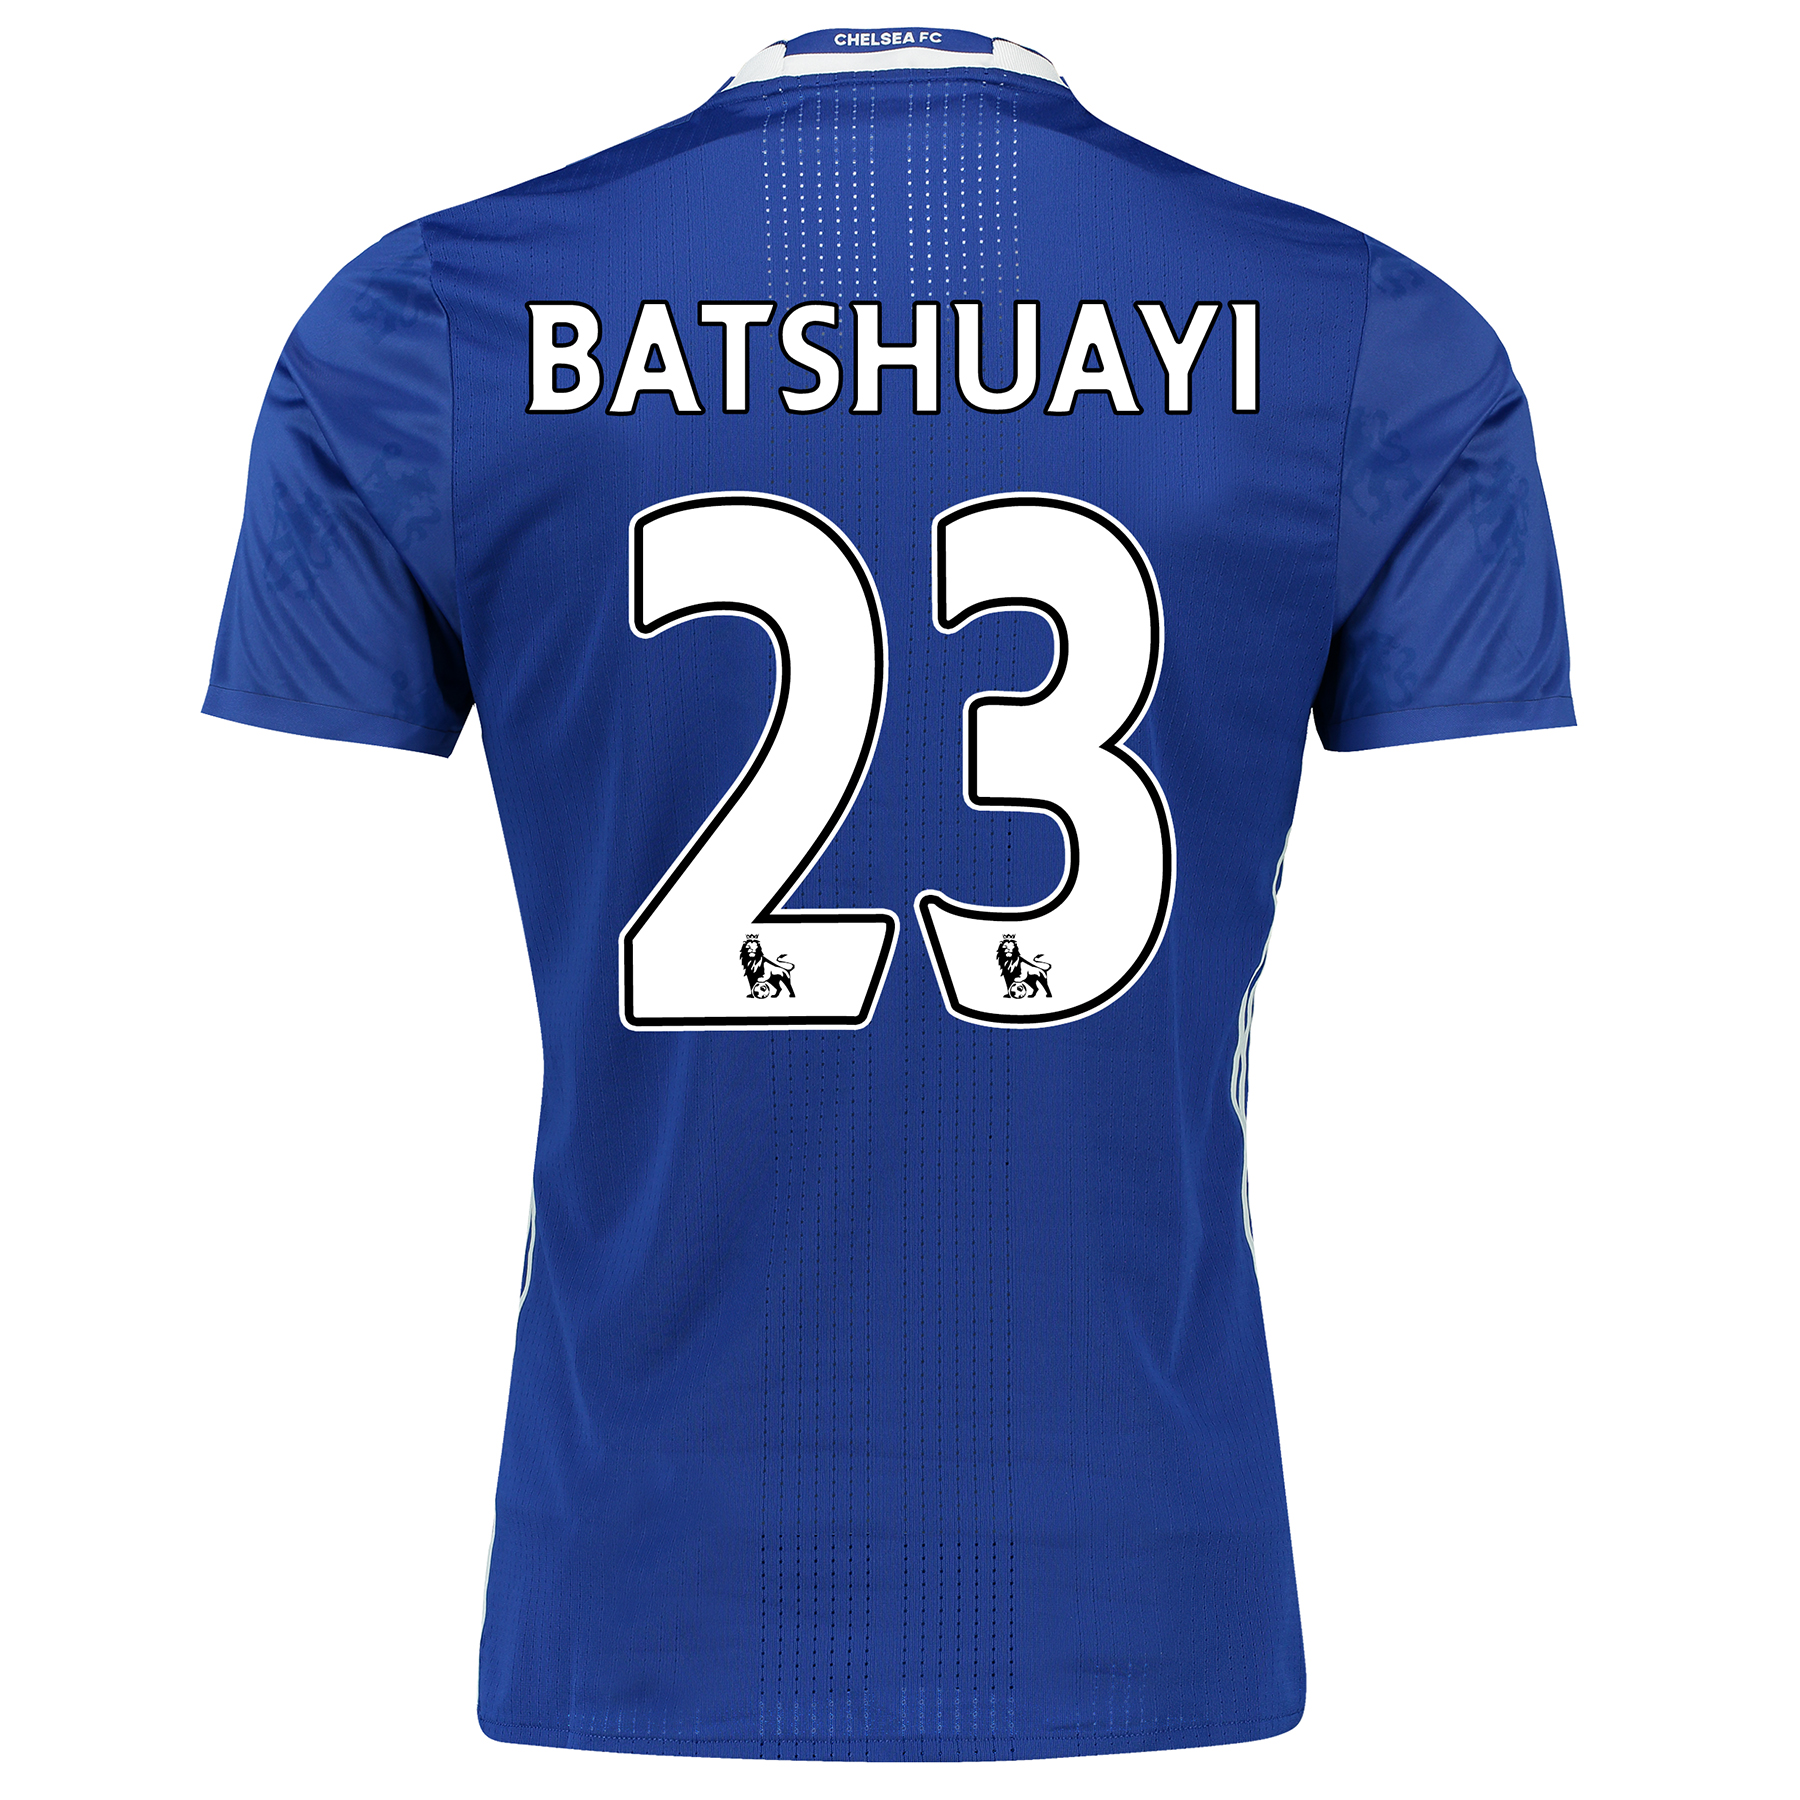 Shop Batshuayi Printed Shirts